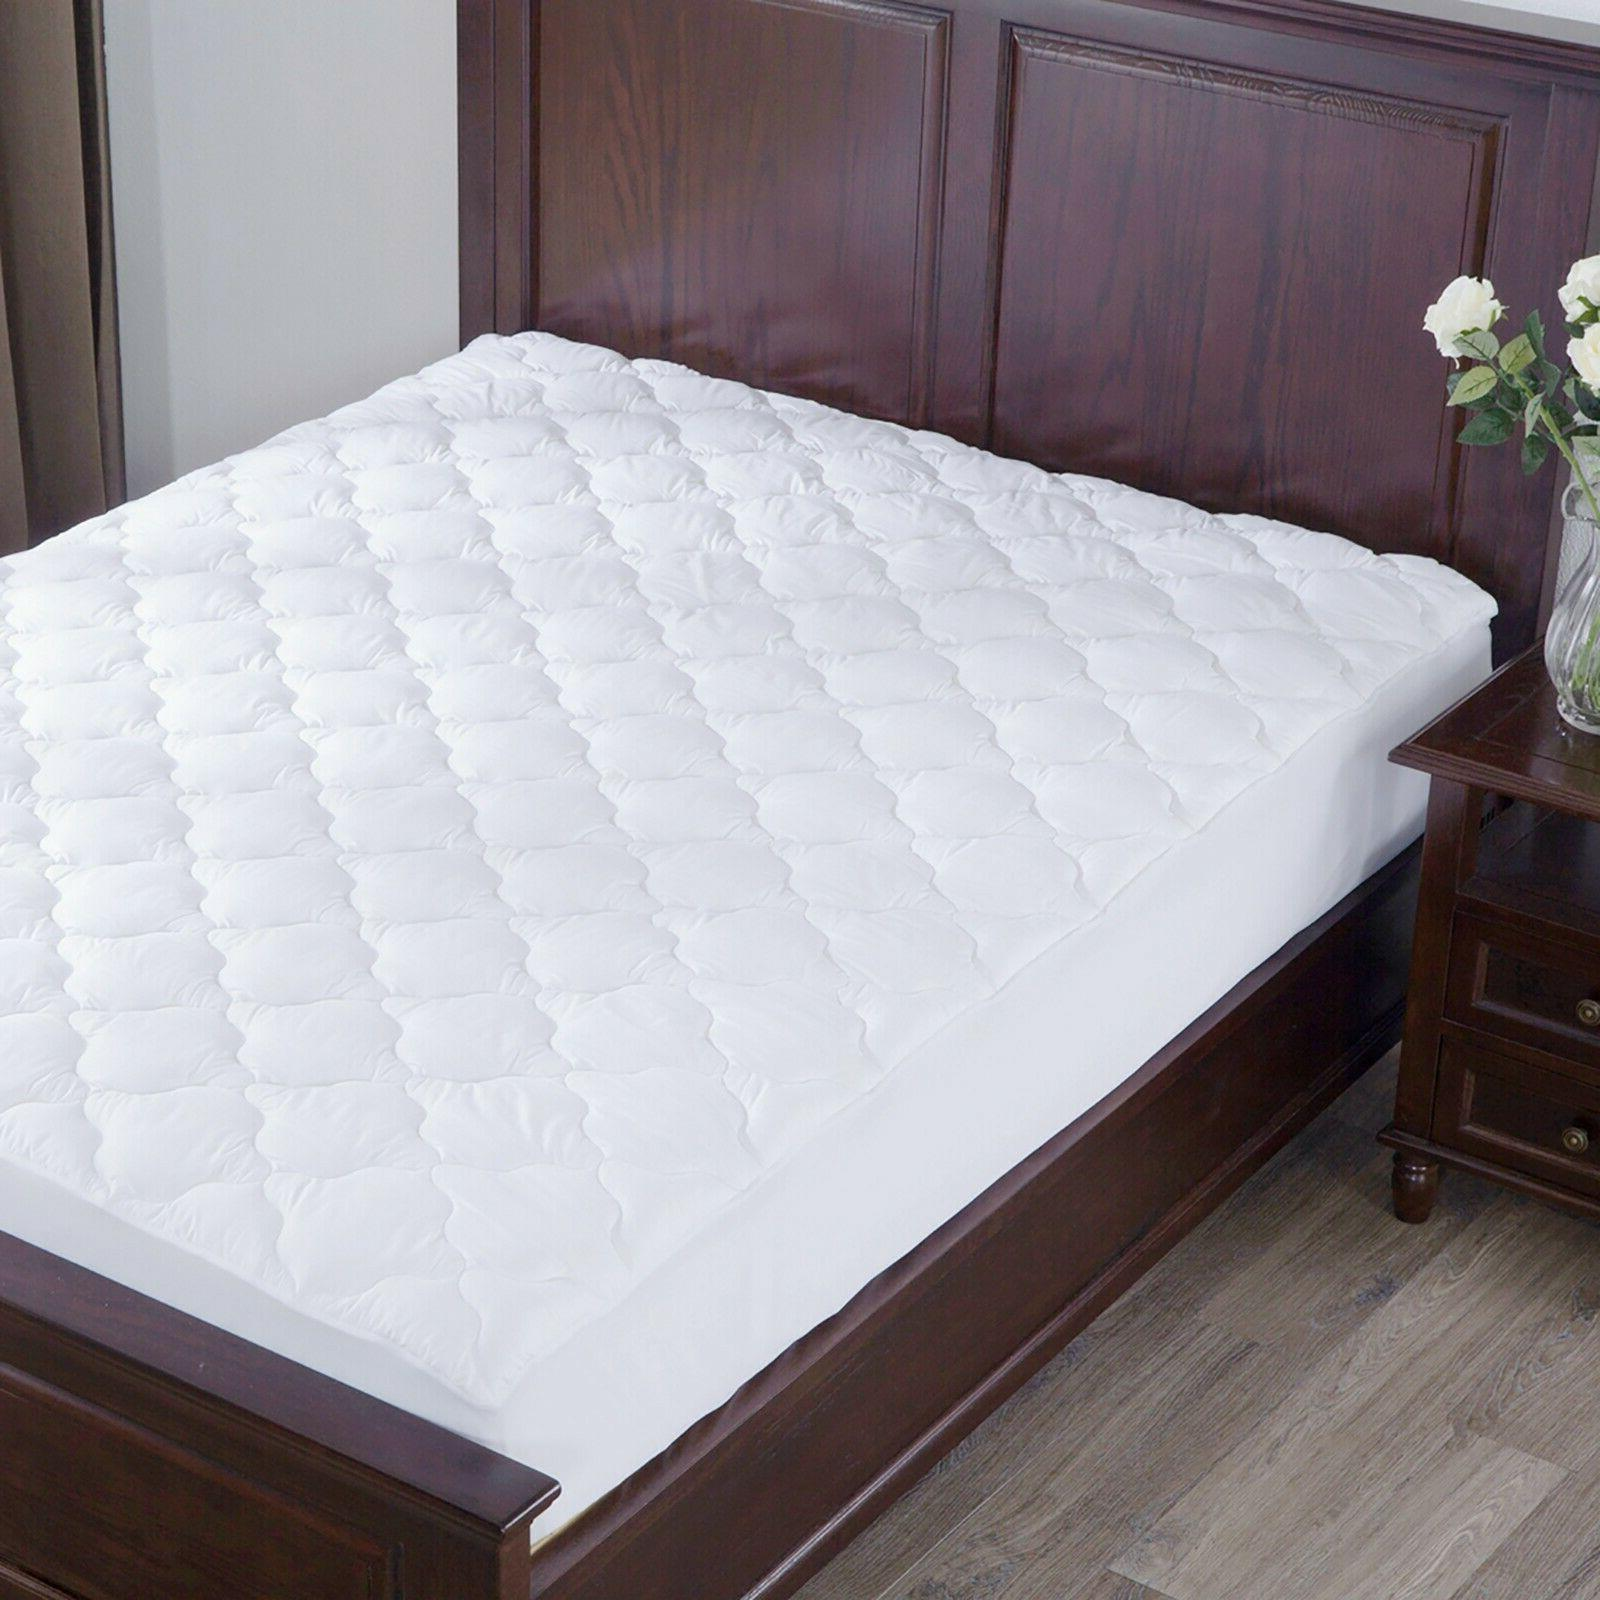 pillow topper quilted mattress cover pad protector